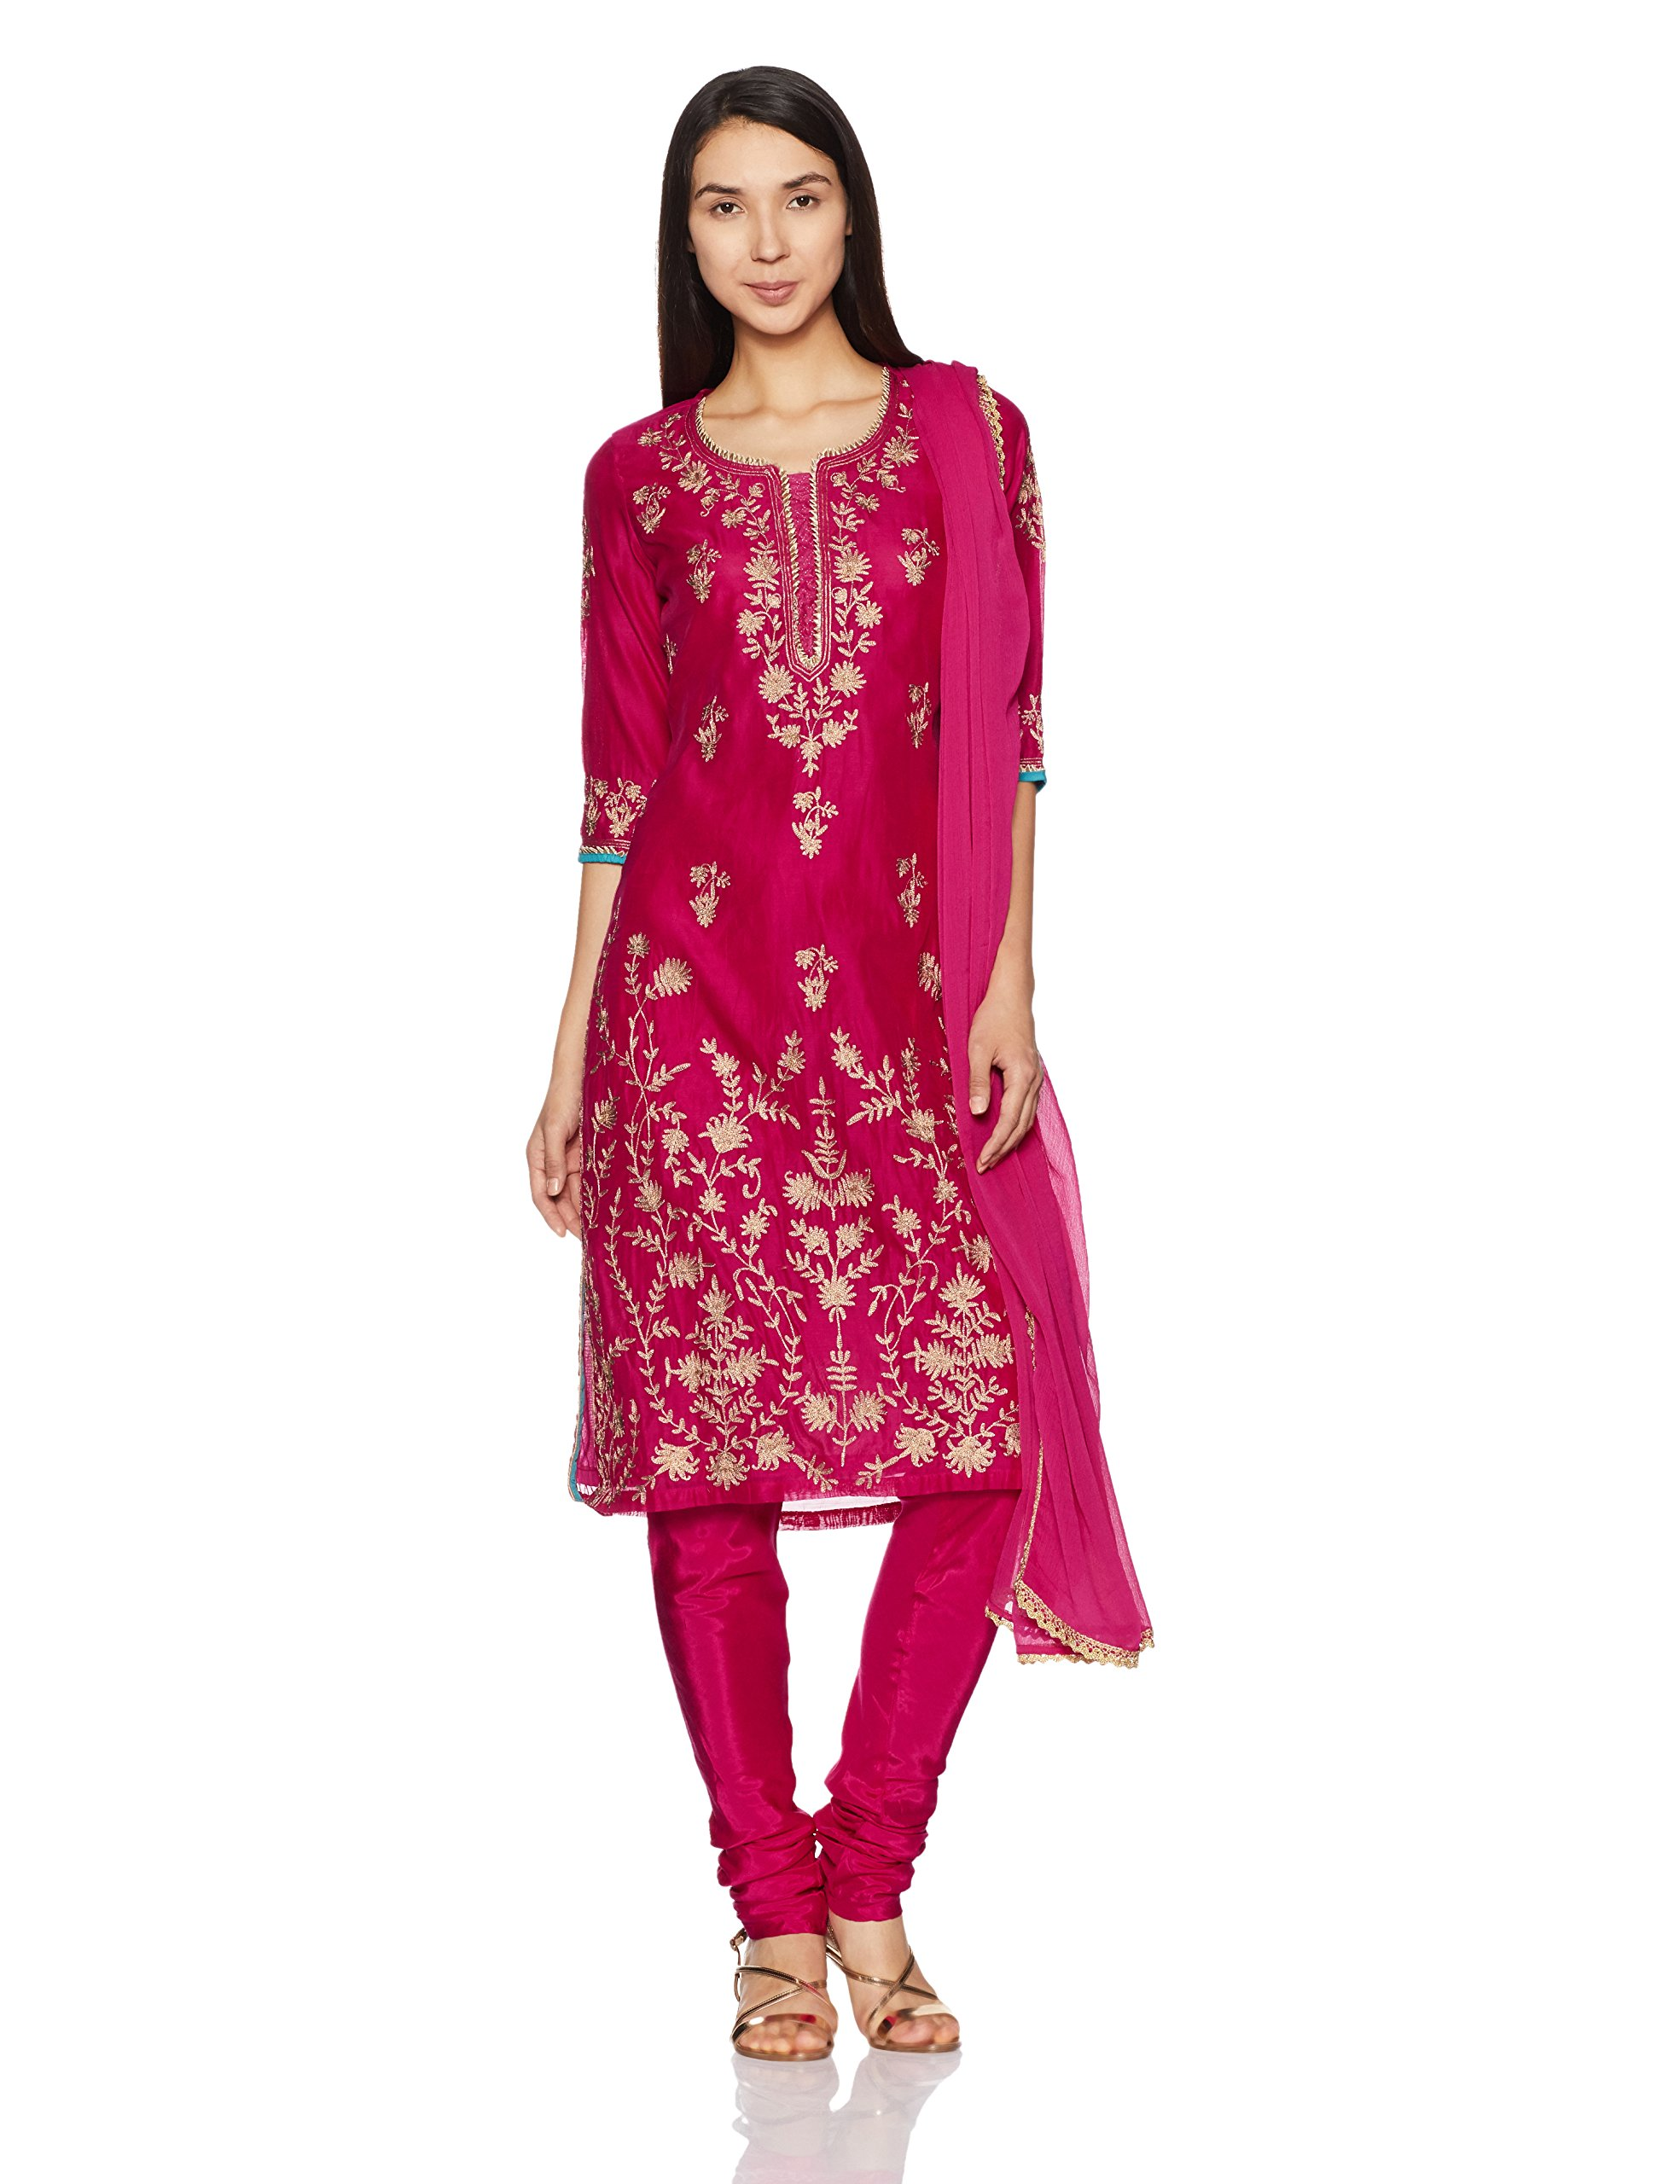 BIBA Women's Straight Poly Cotton Suit Set 42 Pink by Biba (Image #1)